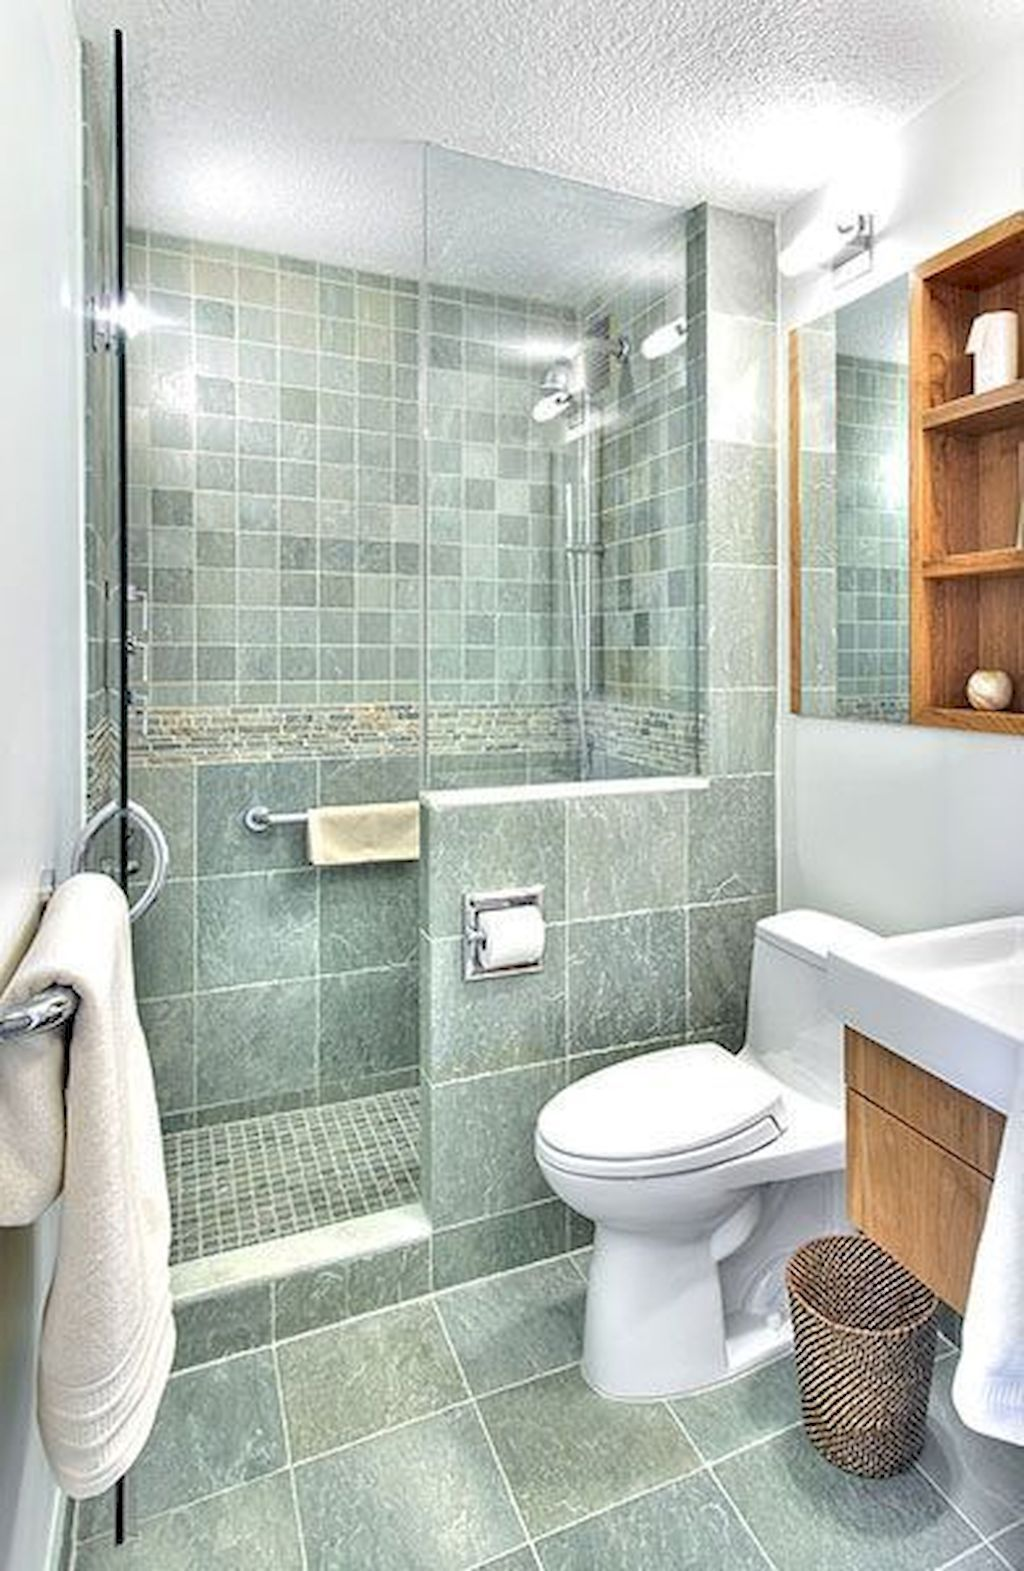 111 awesome small bathroom remodel ideas on a budget (12 | Pinterest